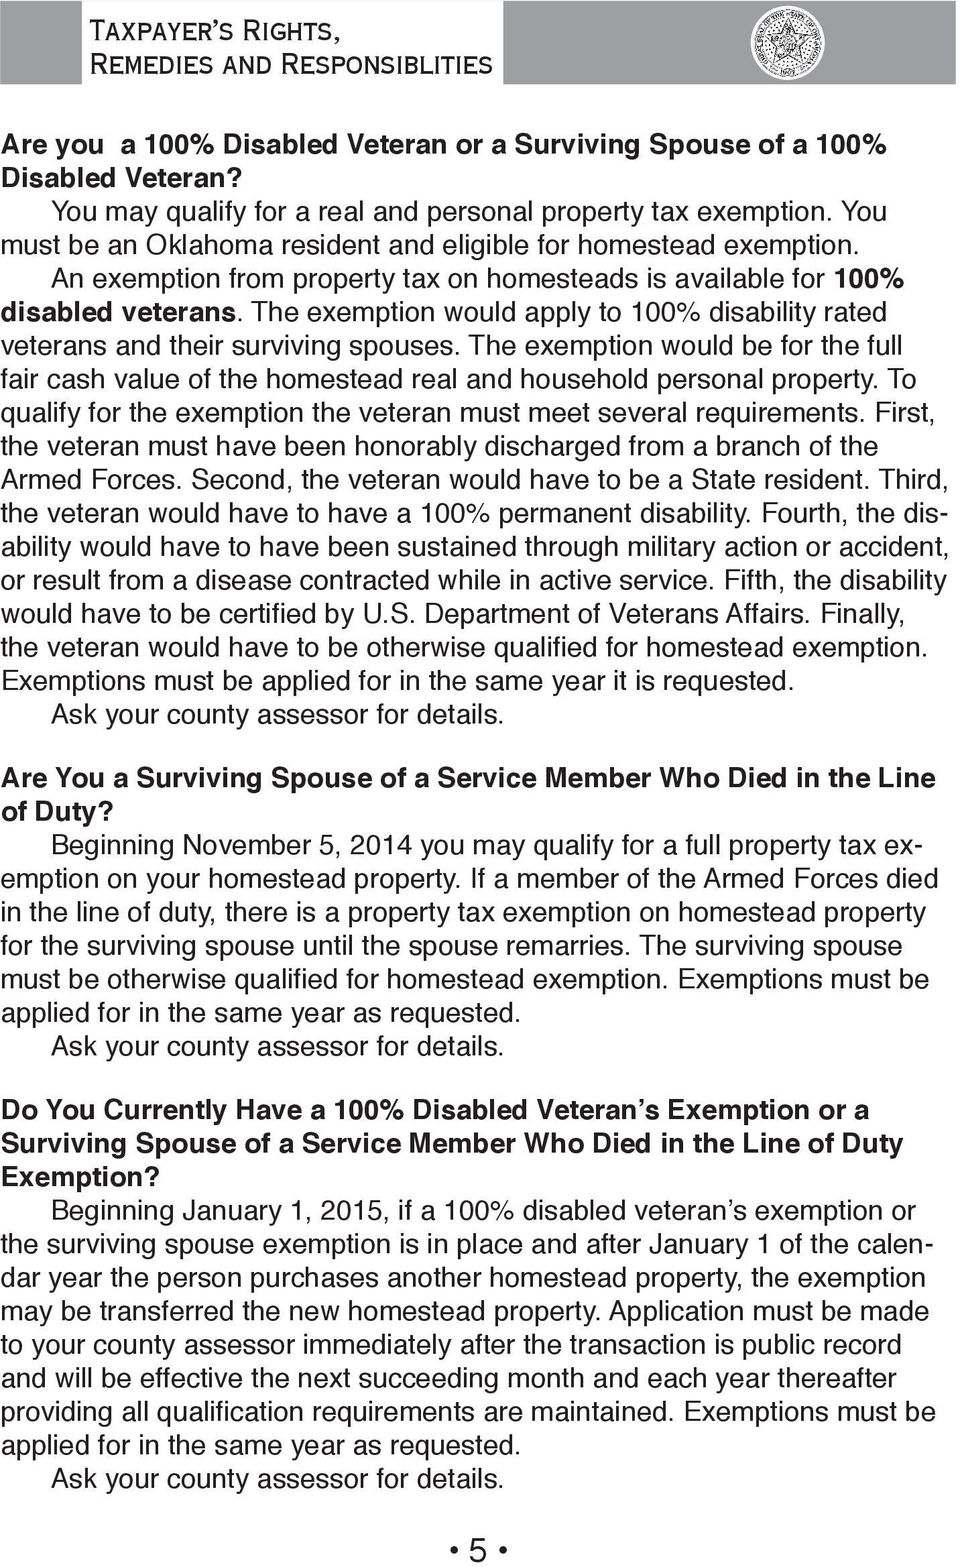 The exemption would apply to 100% disability rated veterans and their surviving spouses. The exemption would be for the full fair cash value of the homestead real and household personal property.